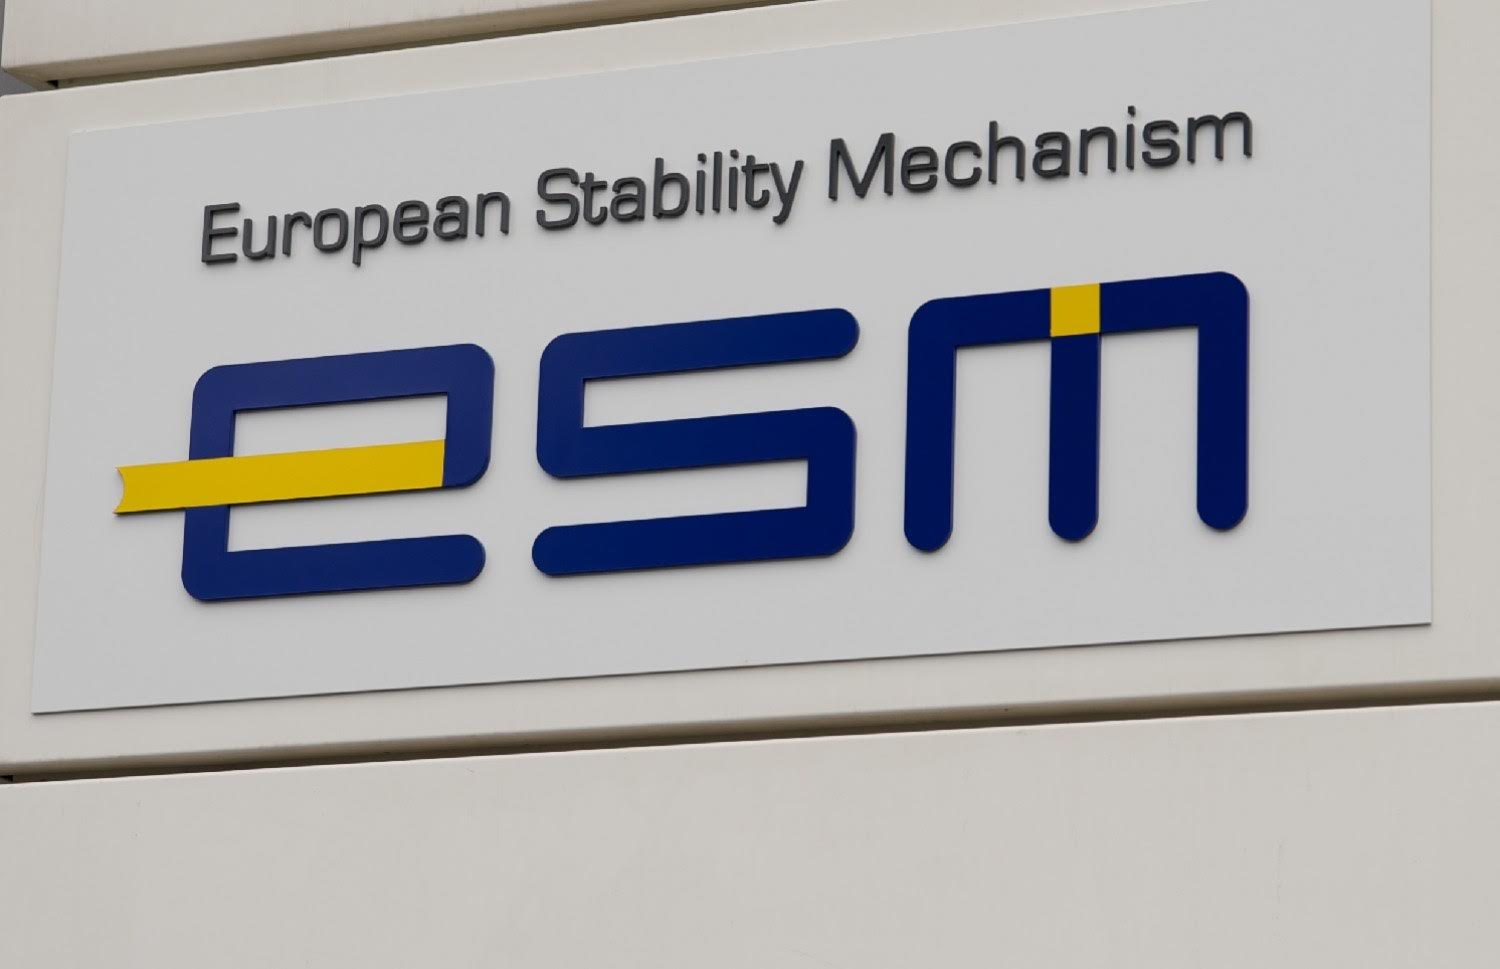 The 15 billion euro tranche cashed out by the ESM for Greece